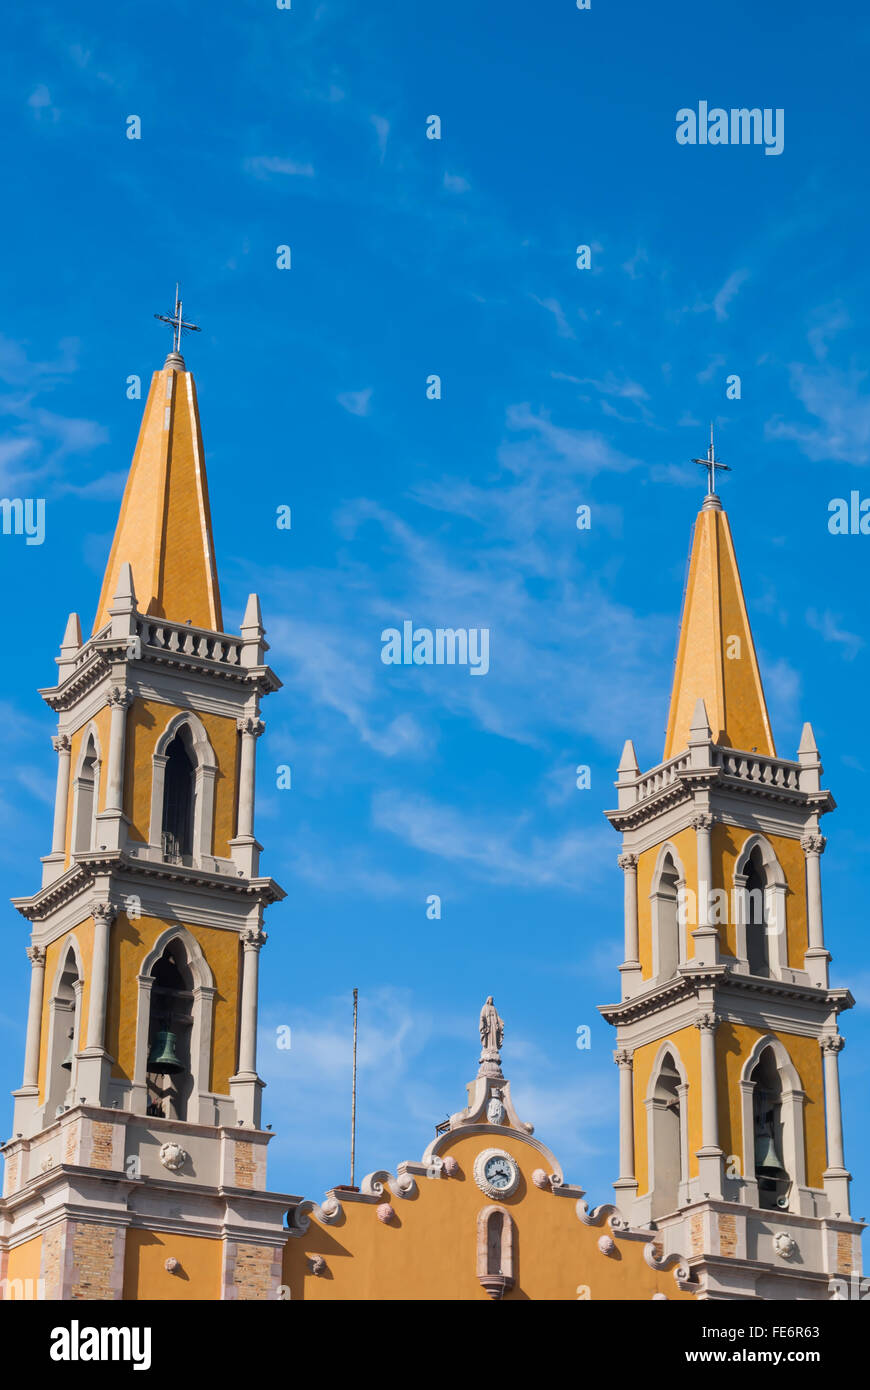 The Ring Vienna S Casual Luxury Hotel Vienna: Church With Two Spires Stock Photos & Church With Two